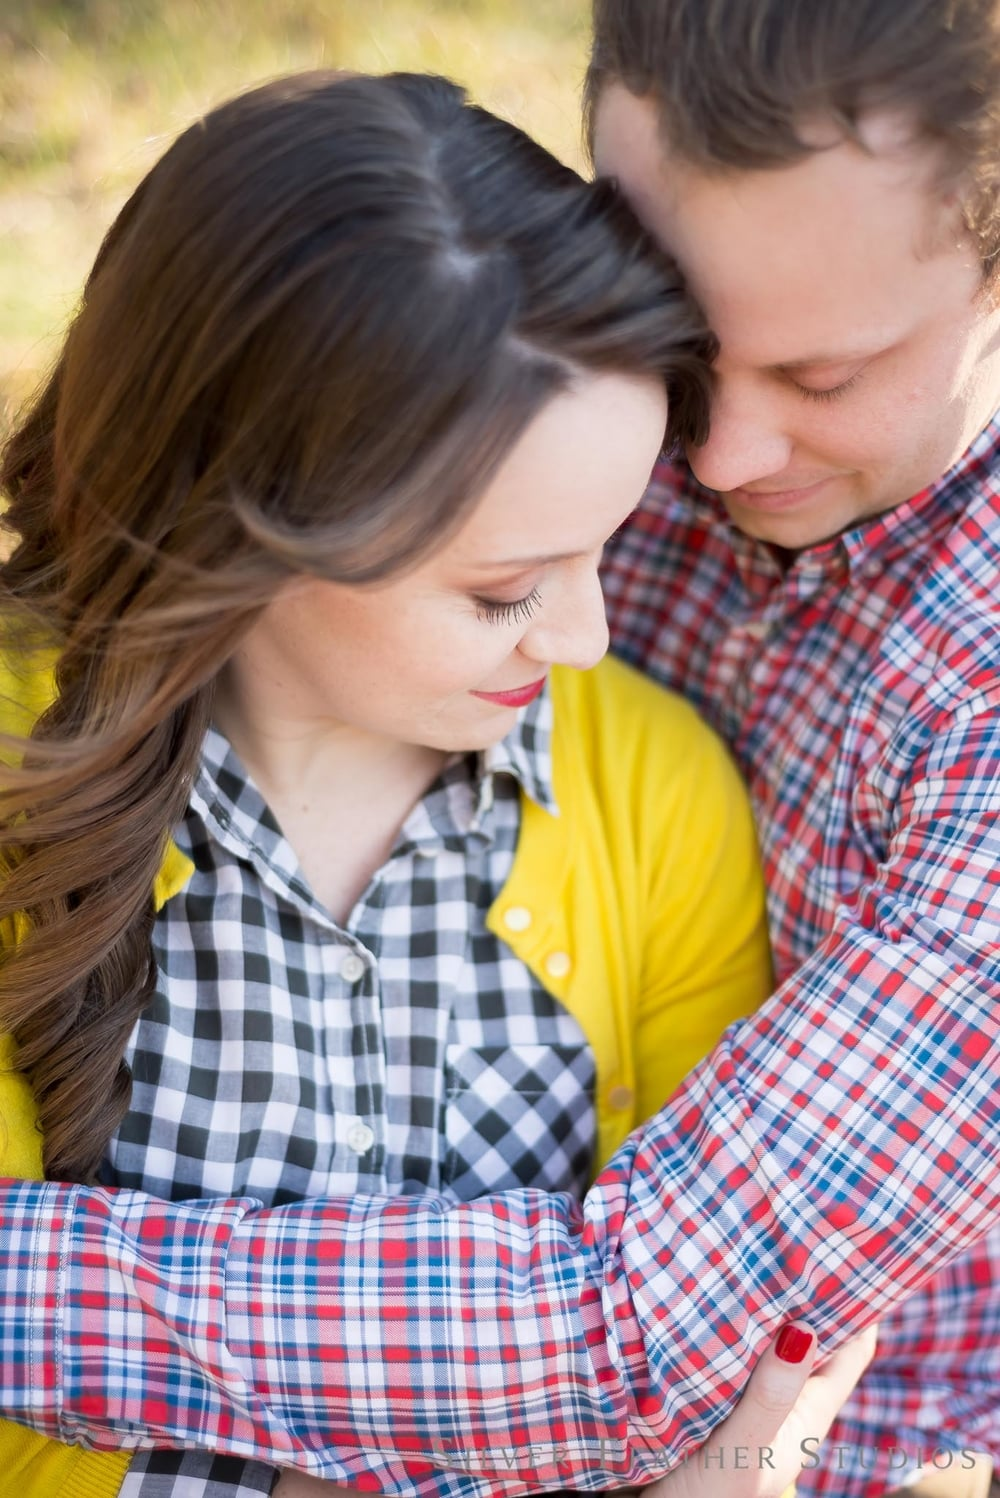 warm hugs and cuddling at Guilford courthouse national park. © engagement photography by silver feather studios